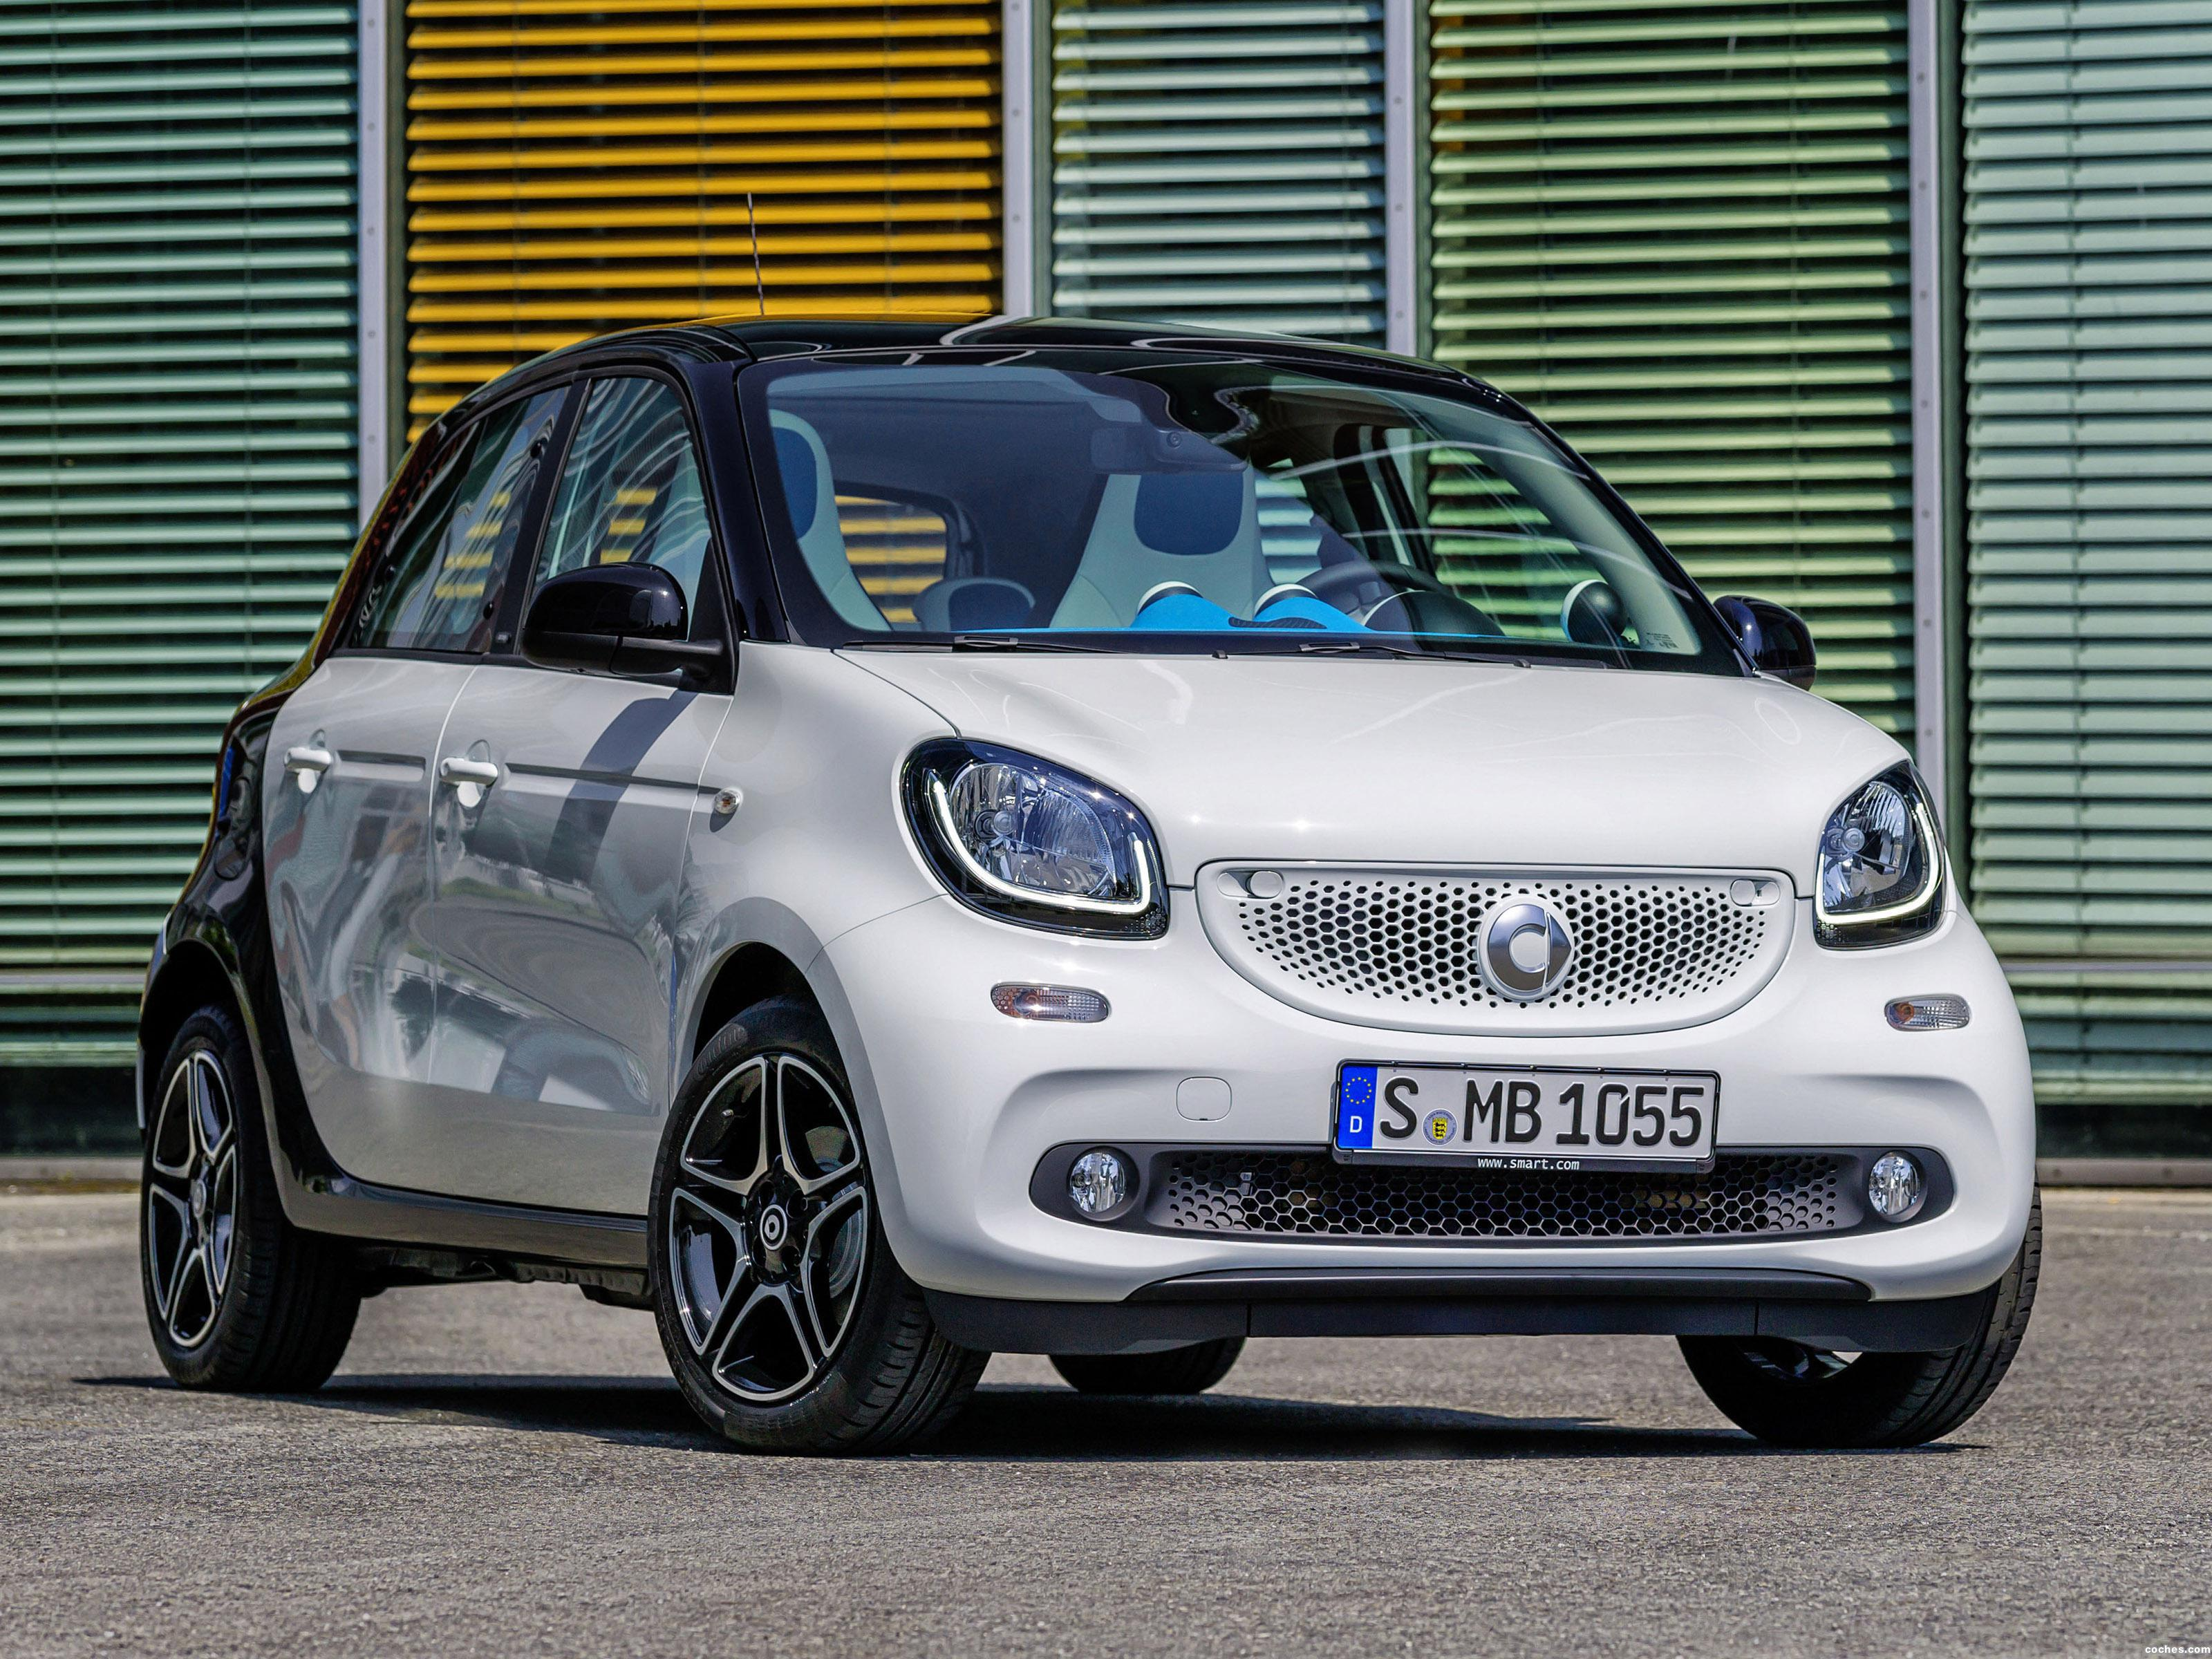 smart_forfour-proxy-w453-2014_r11